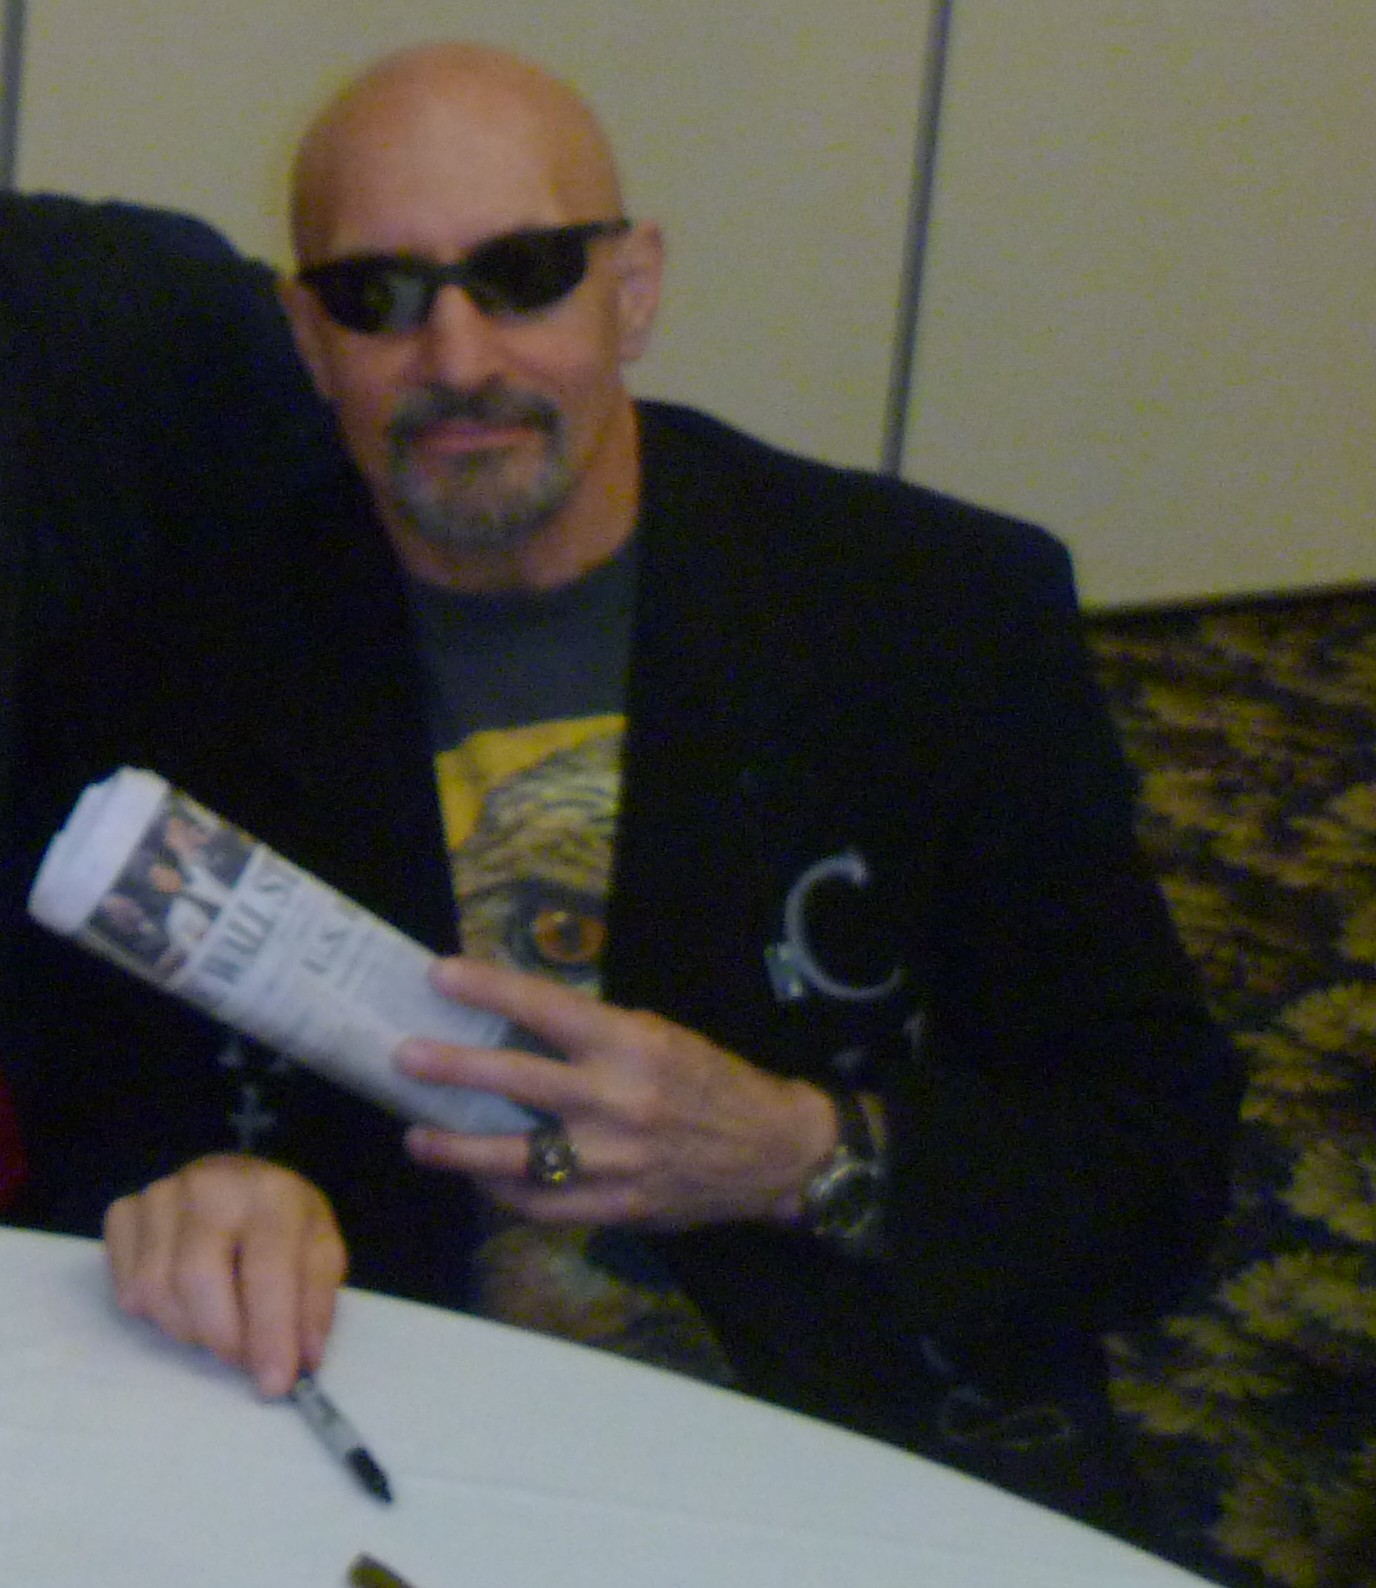 File:Paul Ellering 2011.jpg - Wikimedia Commons